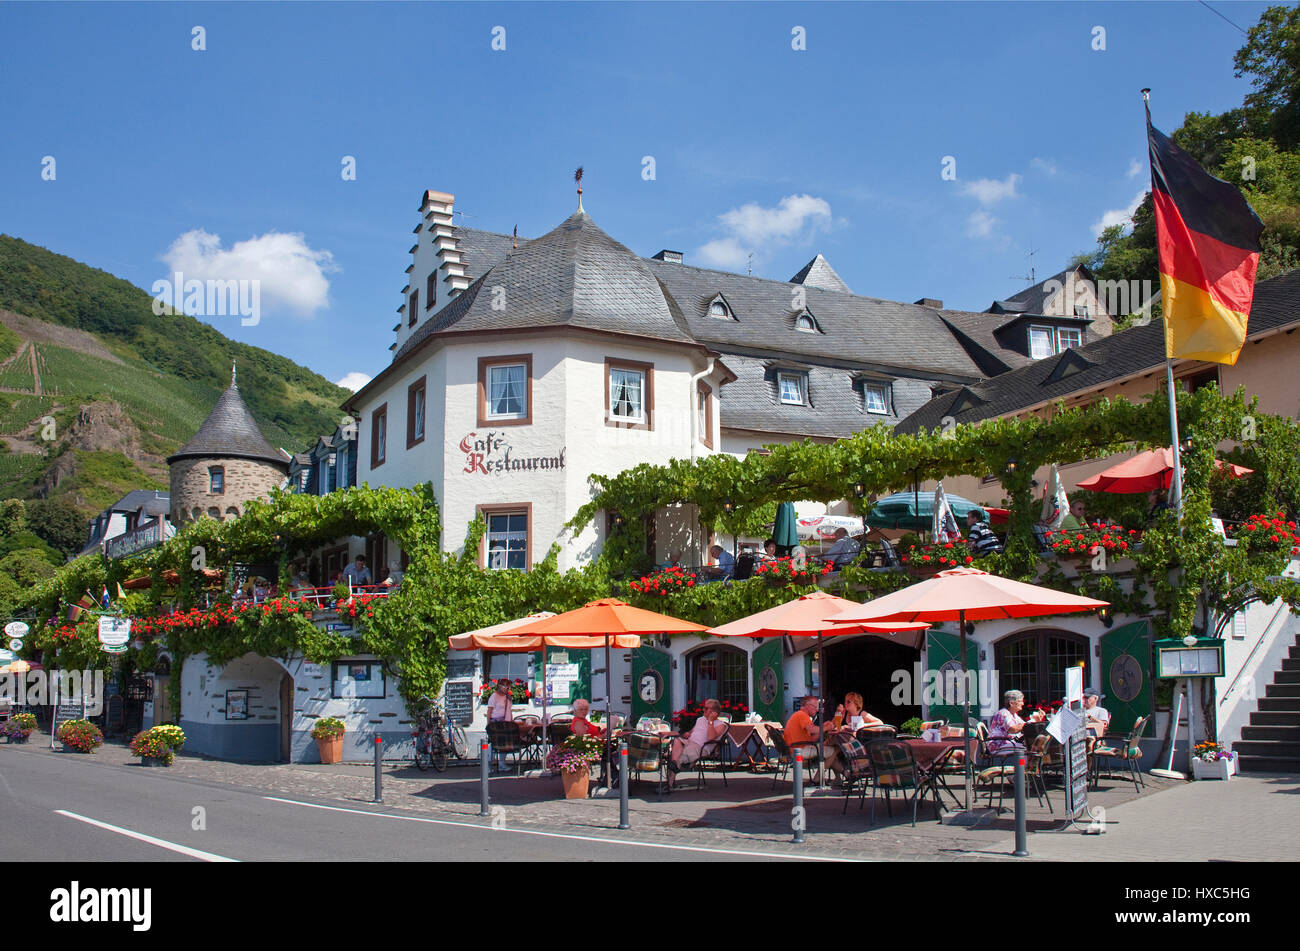 Restaurant, Catering, Beilstein on the Moselle, Rhineland-Palatinate, Germany - Stock Image